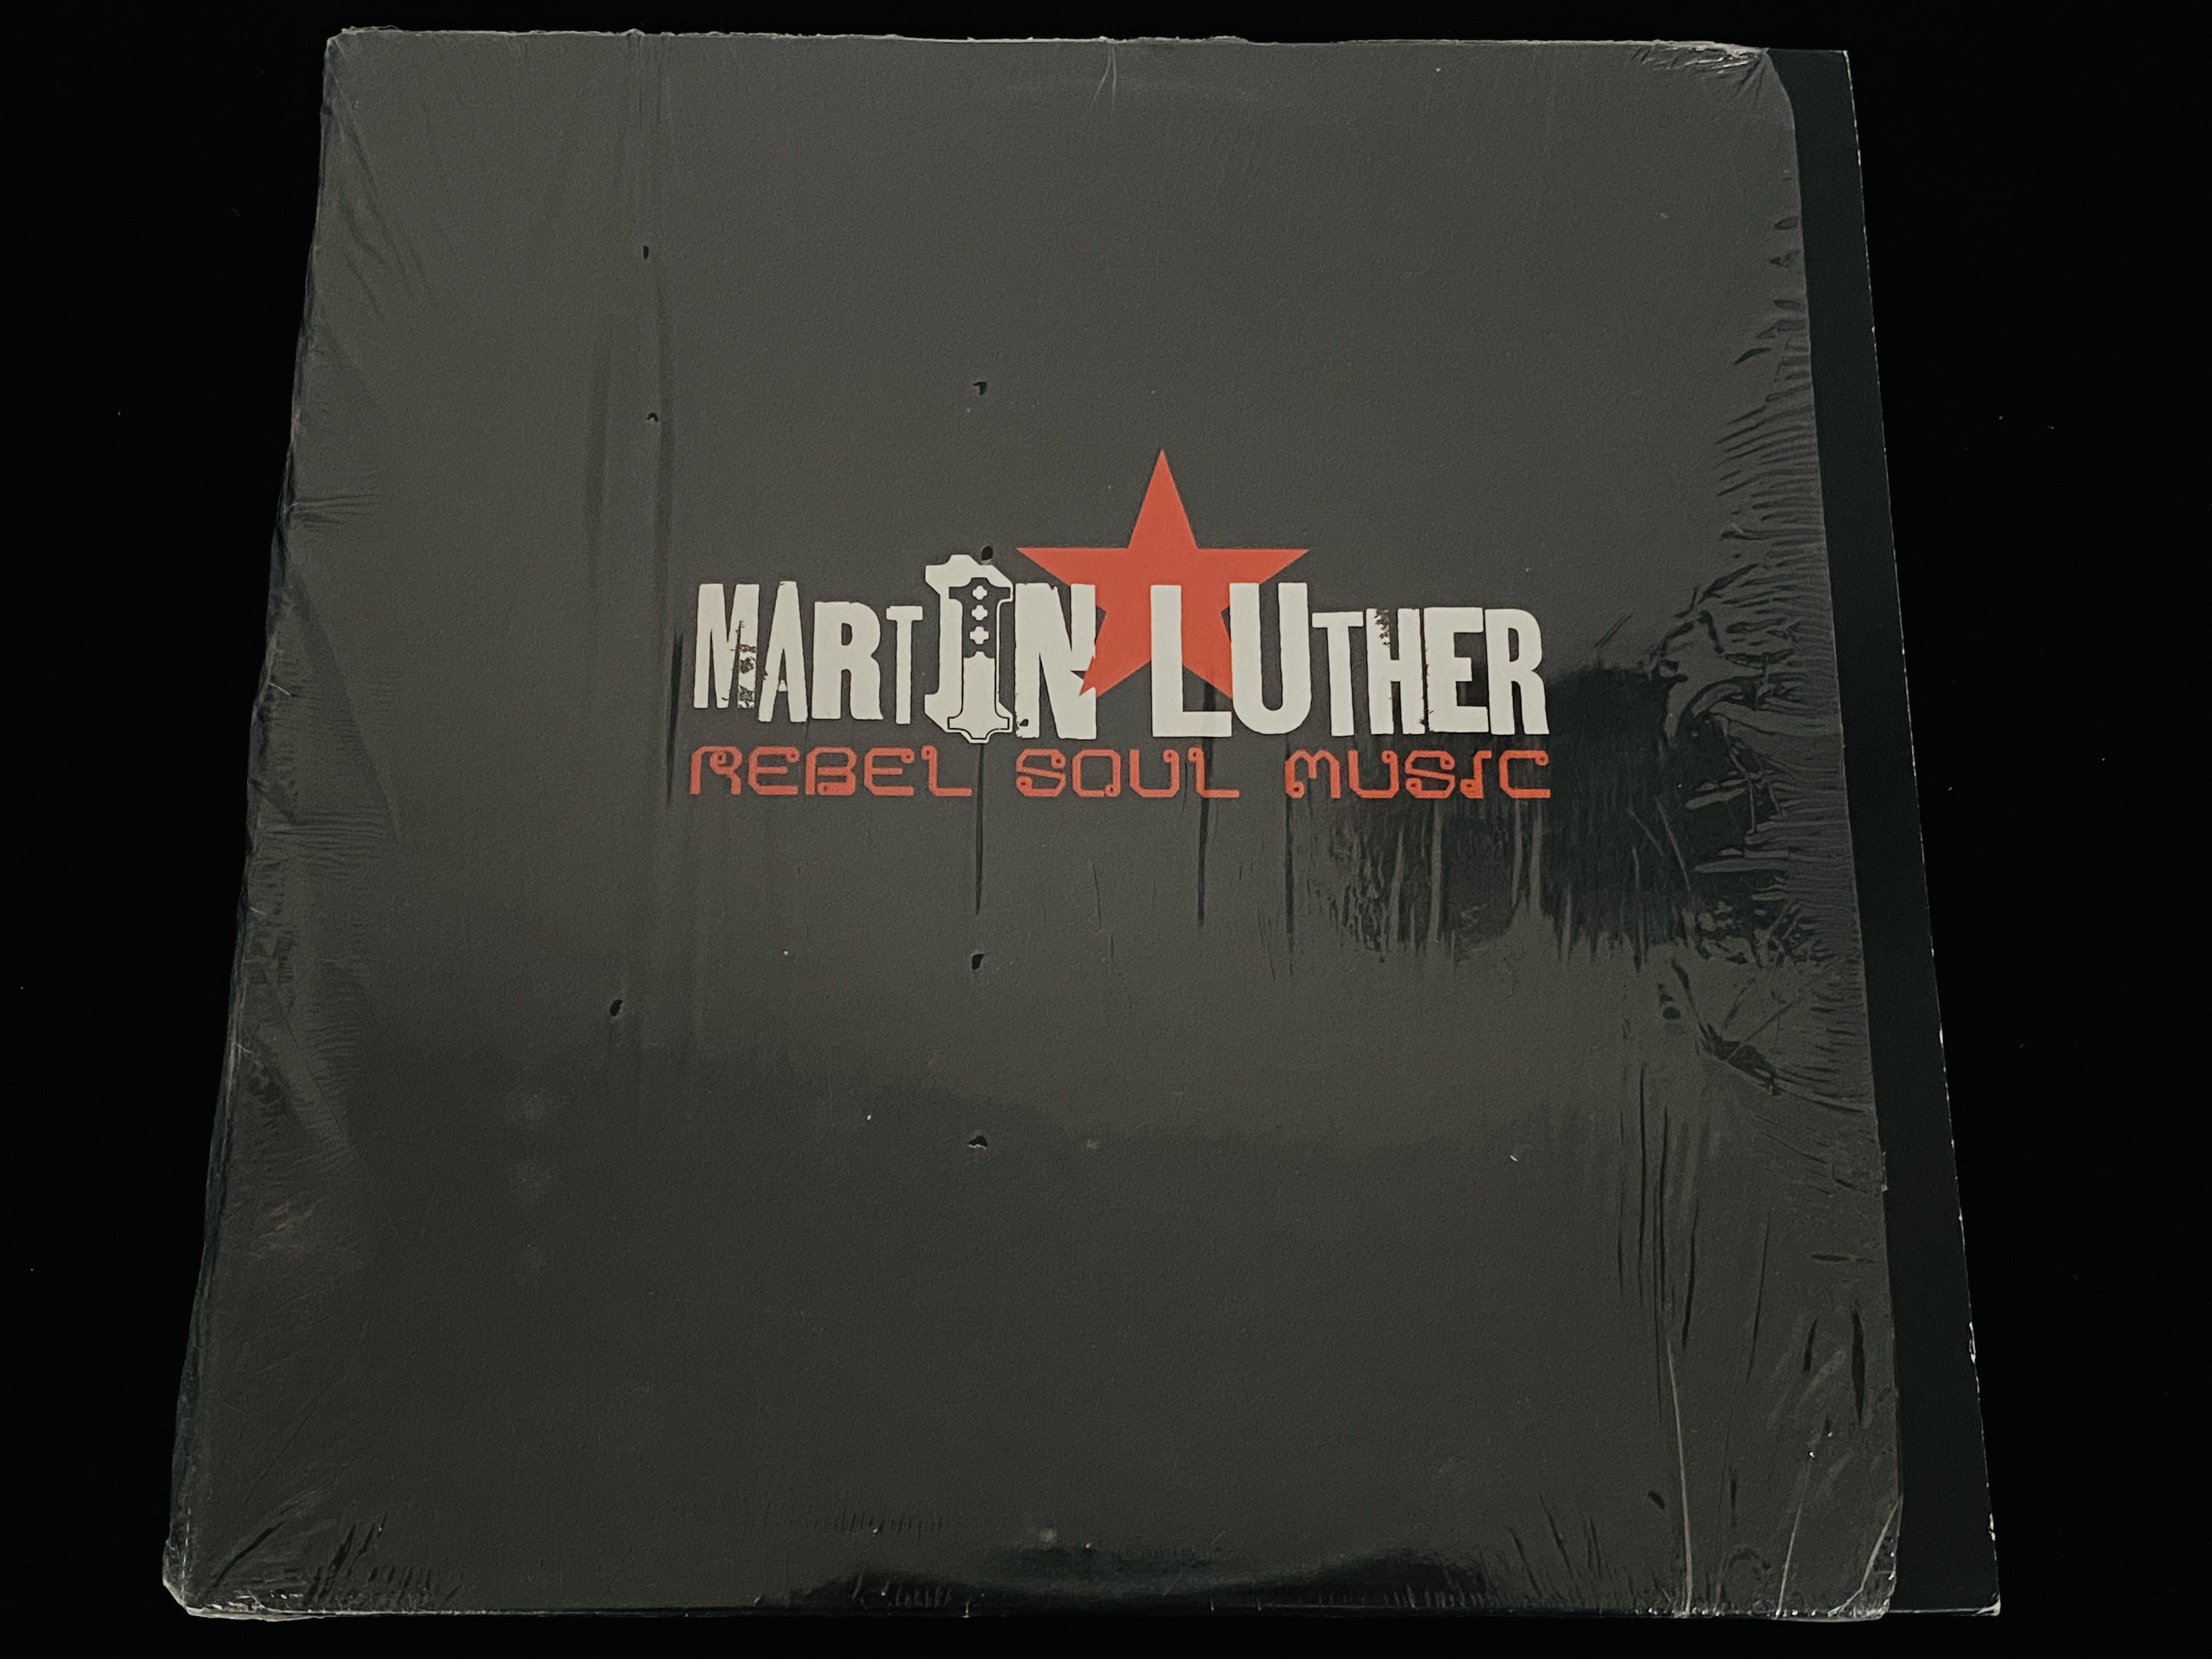 Martin Luther - Rebel Sound Music (Maxi-Single, US, 2004)